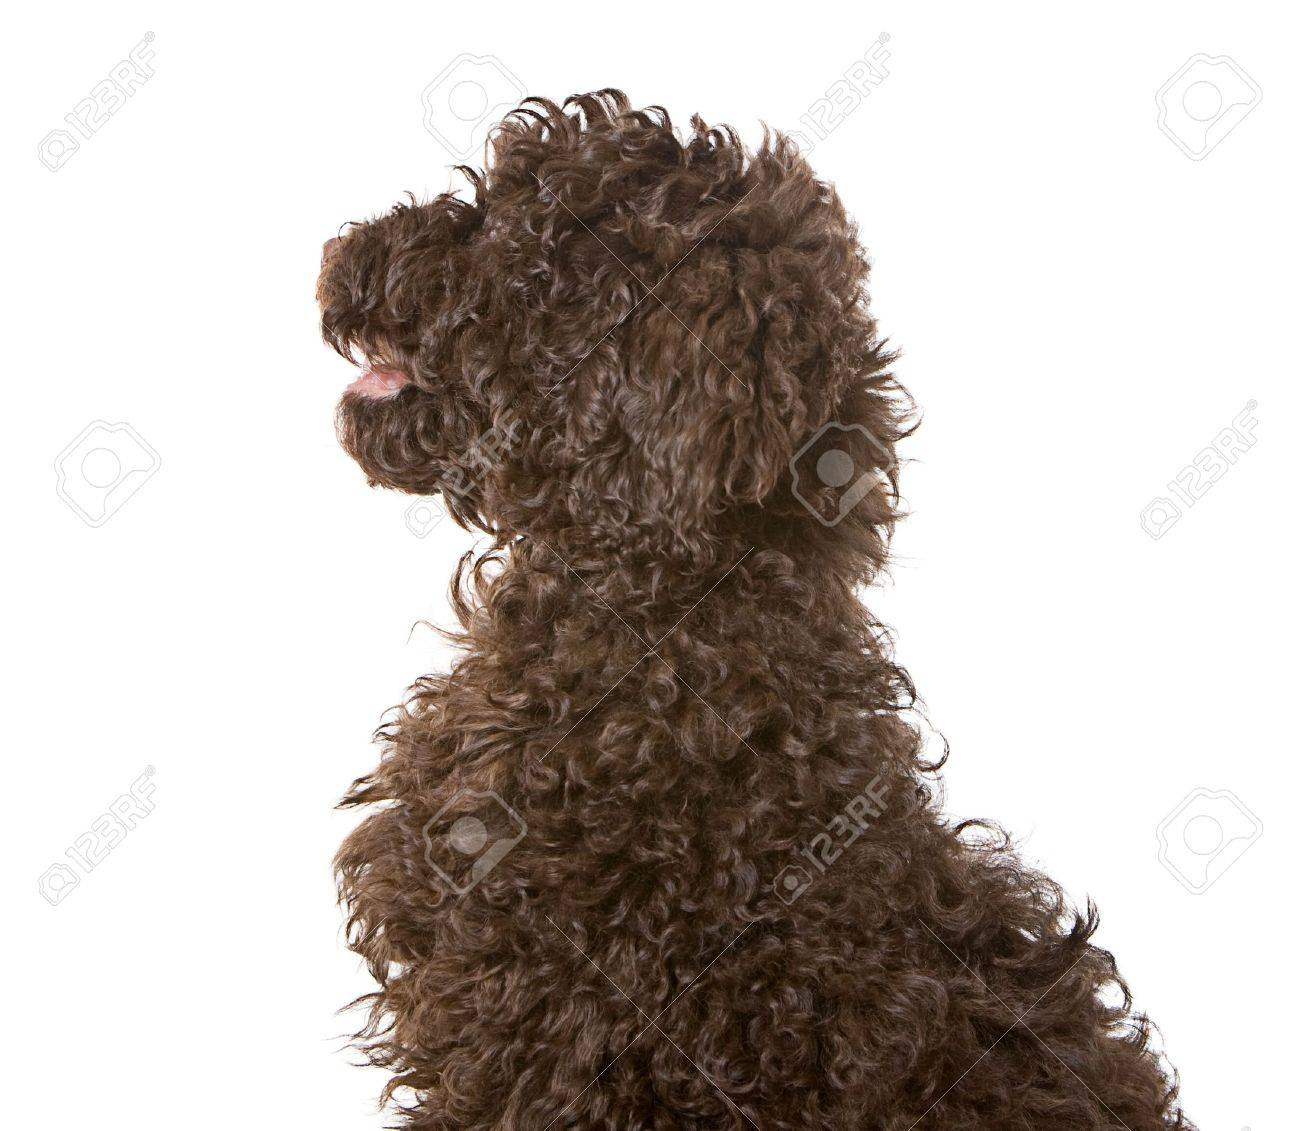 Profile Shot Of A Chocolate Labradoodle Puppy Stock Photo Picture